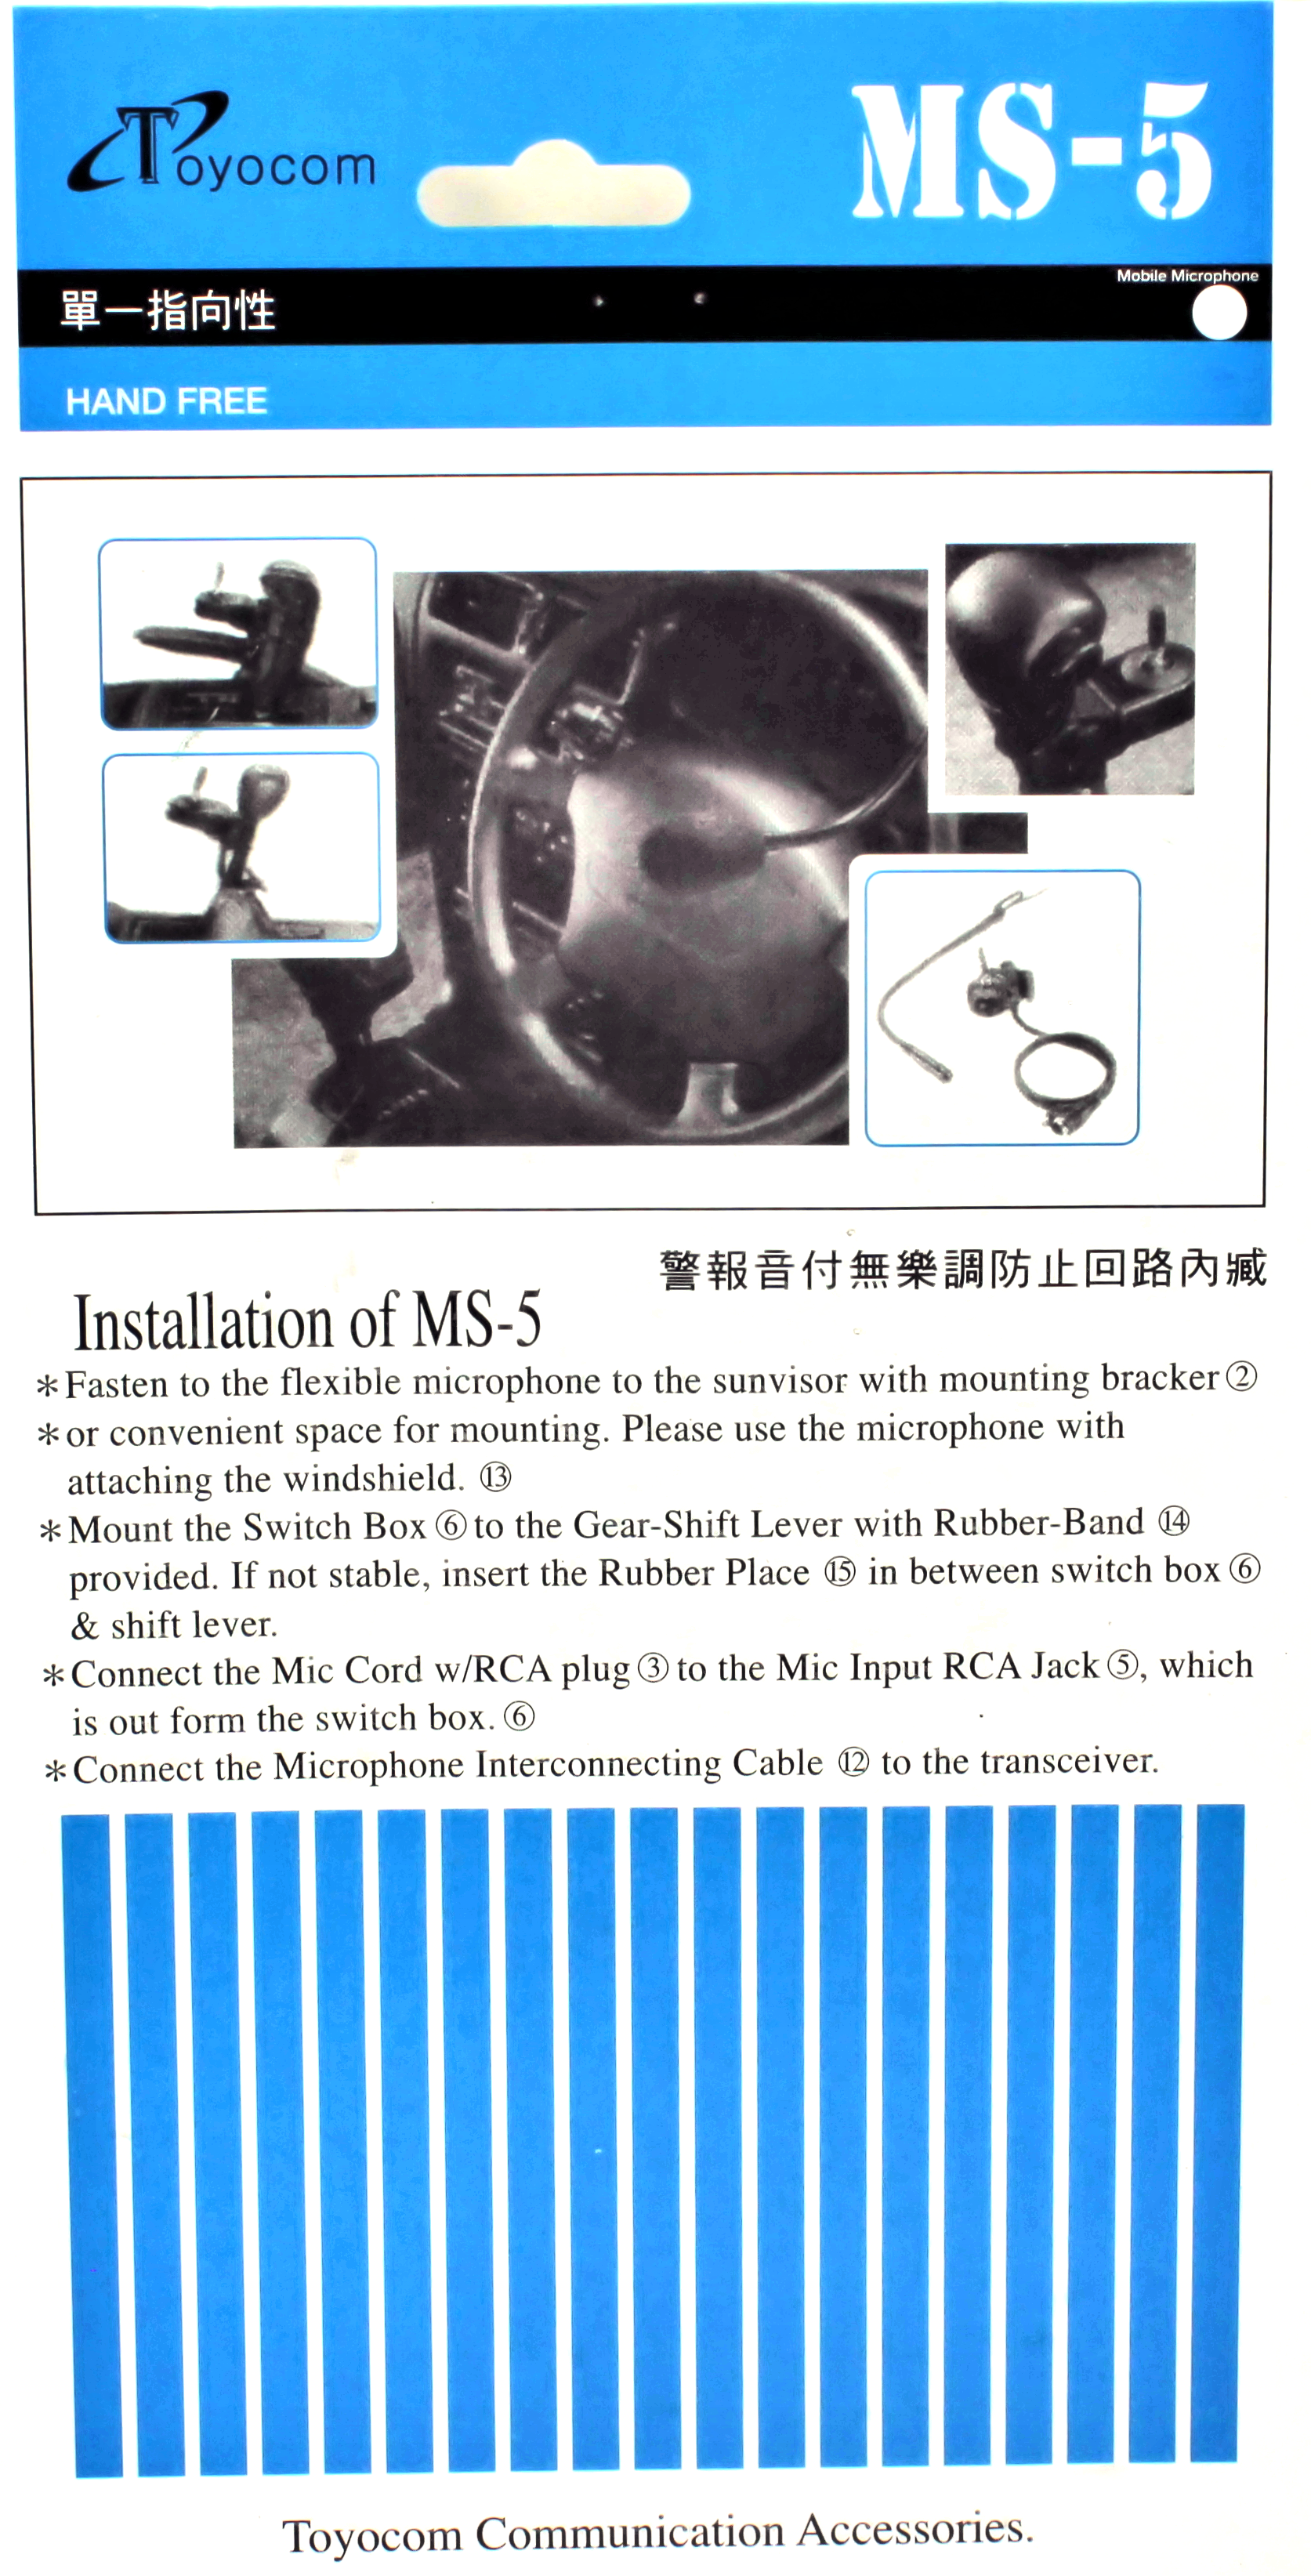 Toyocom MS-5 - Hands Free Remote Mount 4-Pin CB Microphone System - Installation Instructions